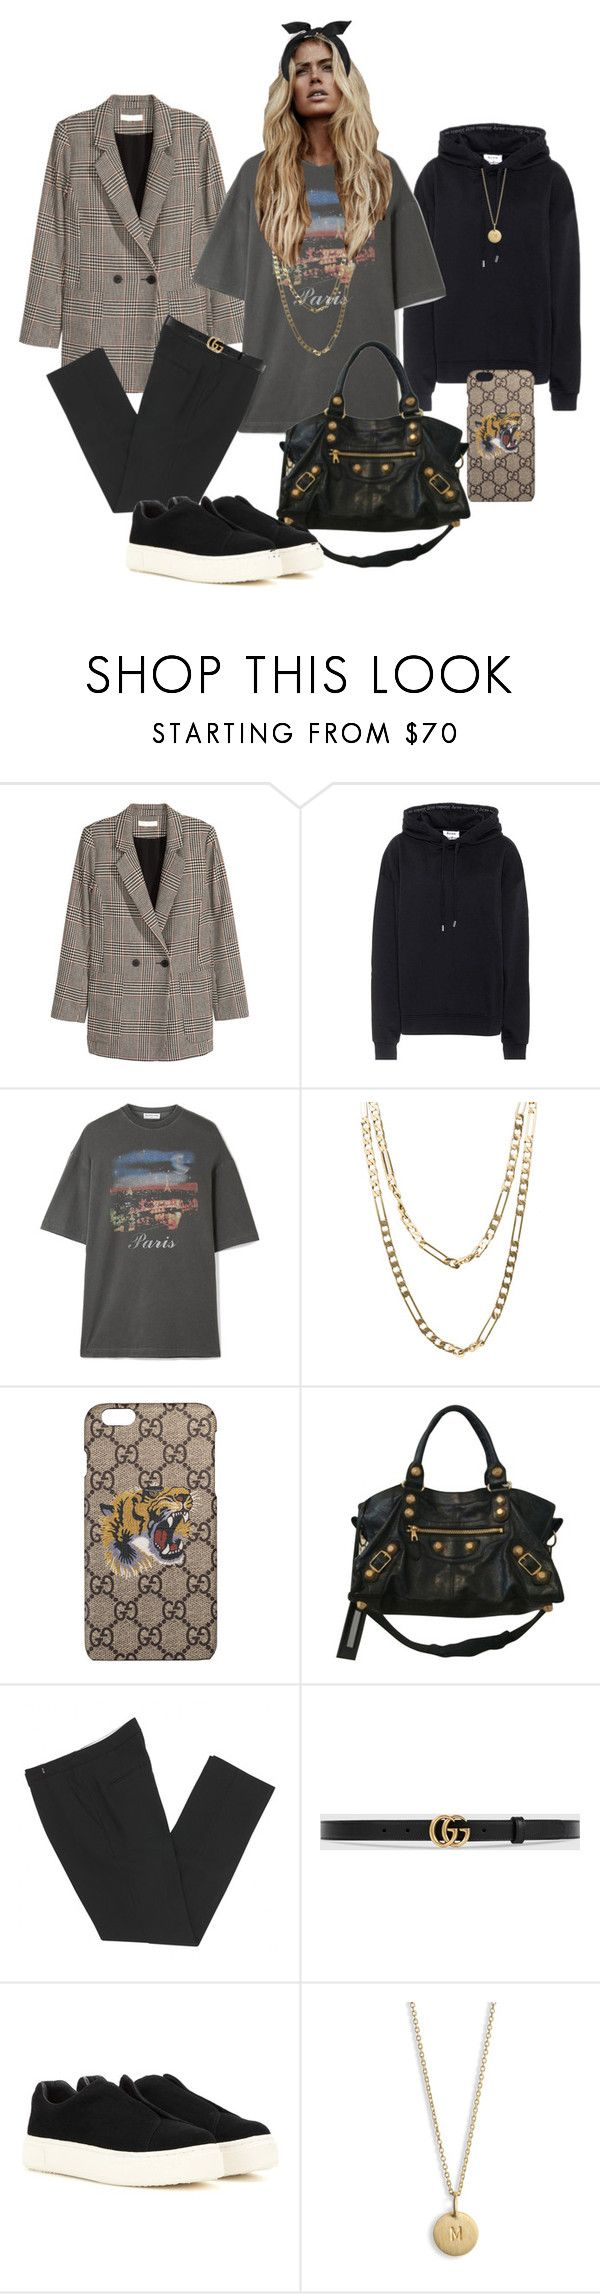 """Untitled #243"" by fashiondisguise on Polyvore featuring Jakke, Acne Studios, Balenciaga, Cartier, Gucci, Isabel Marant, Eytys and yunotme"